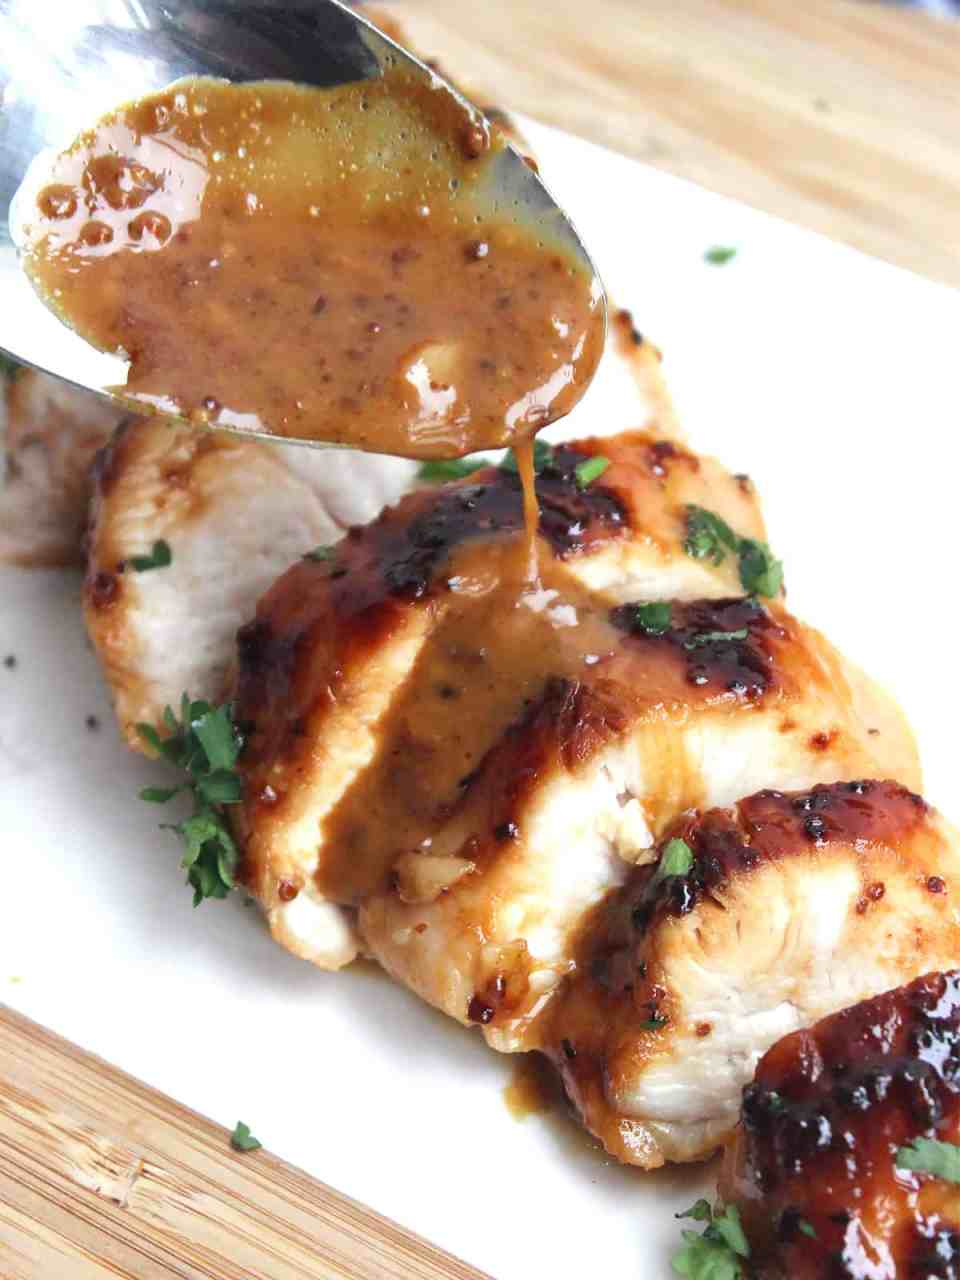 Sauce on a spoon being drizzled over the sliced chicken breast.